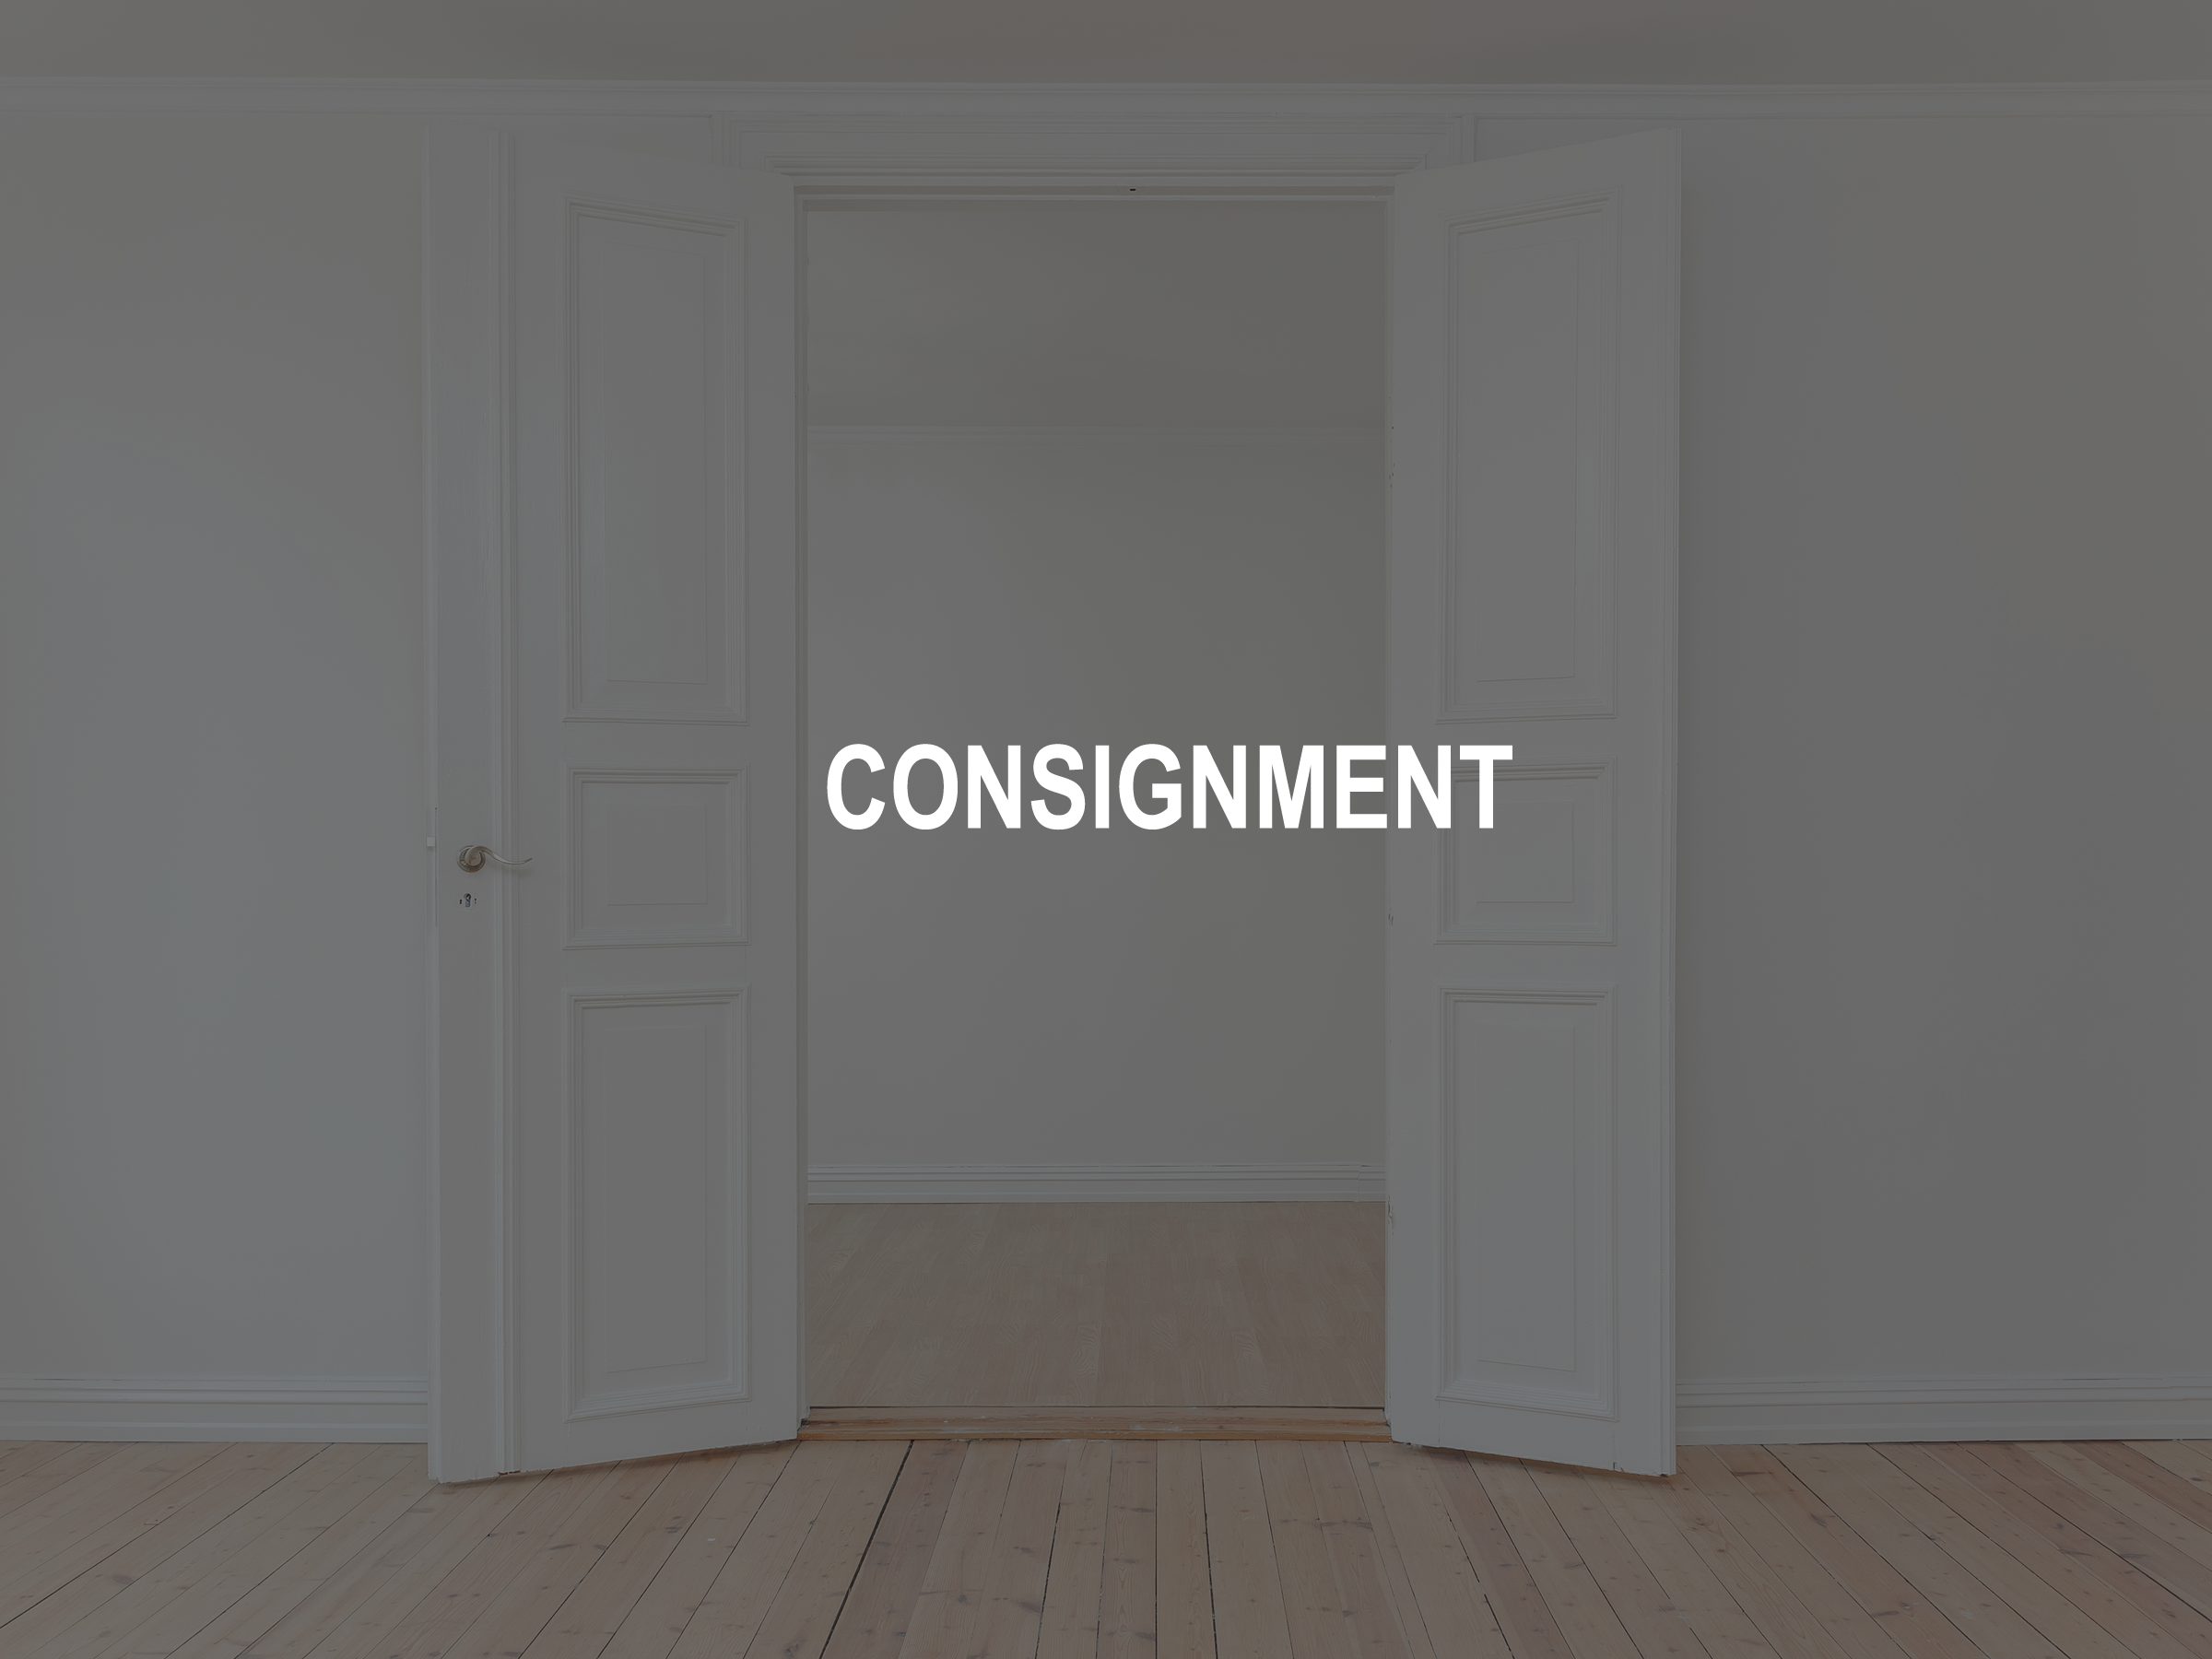 CONSIGNMENT MANAGEMENT